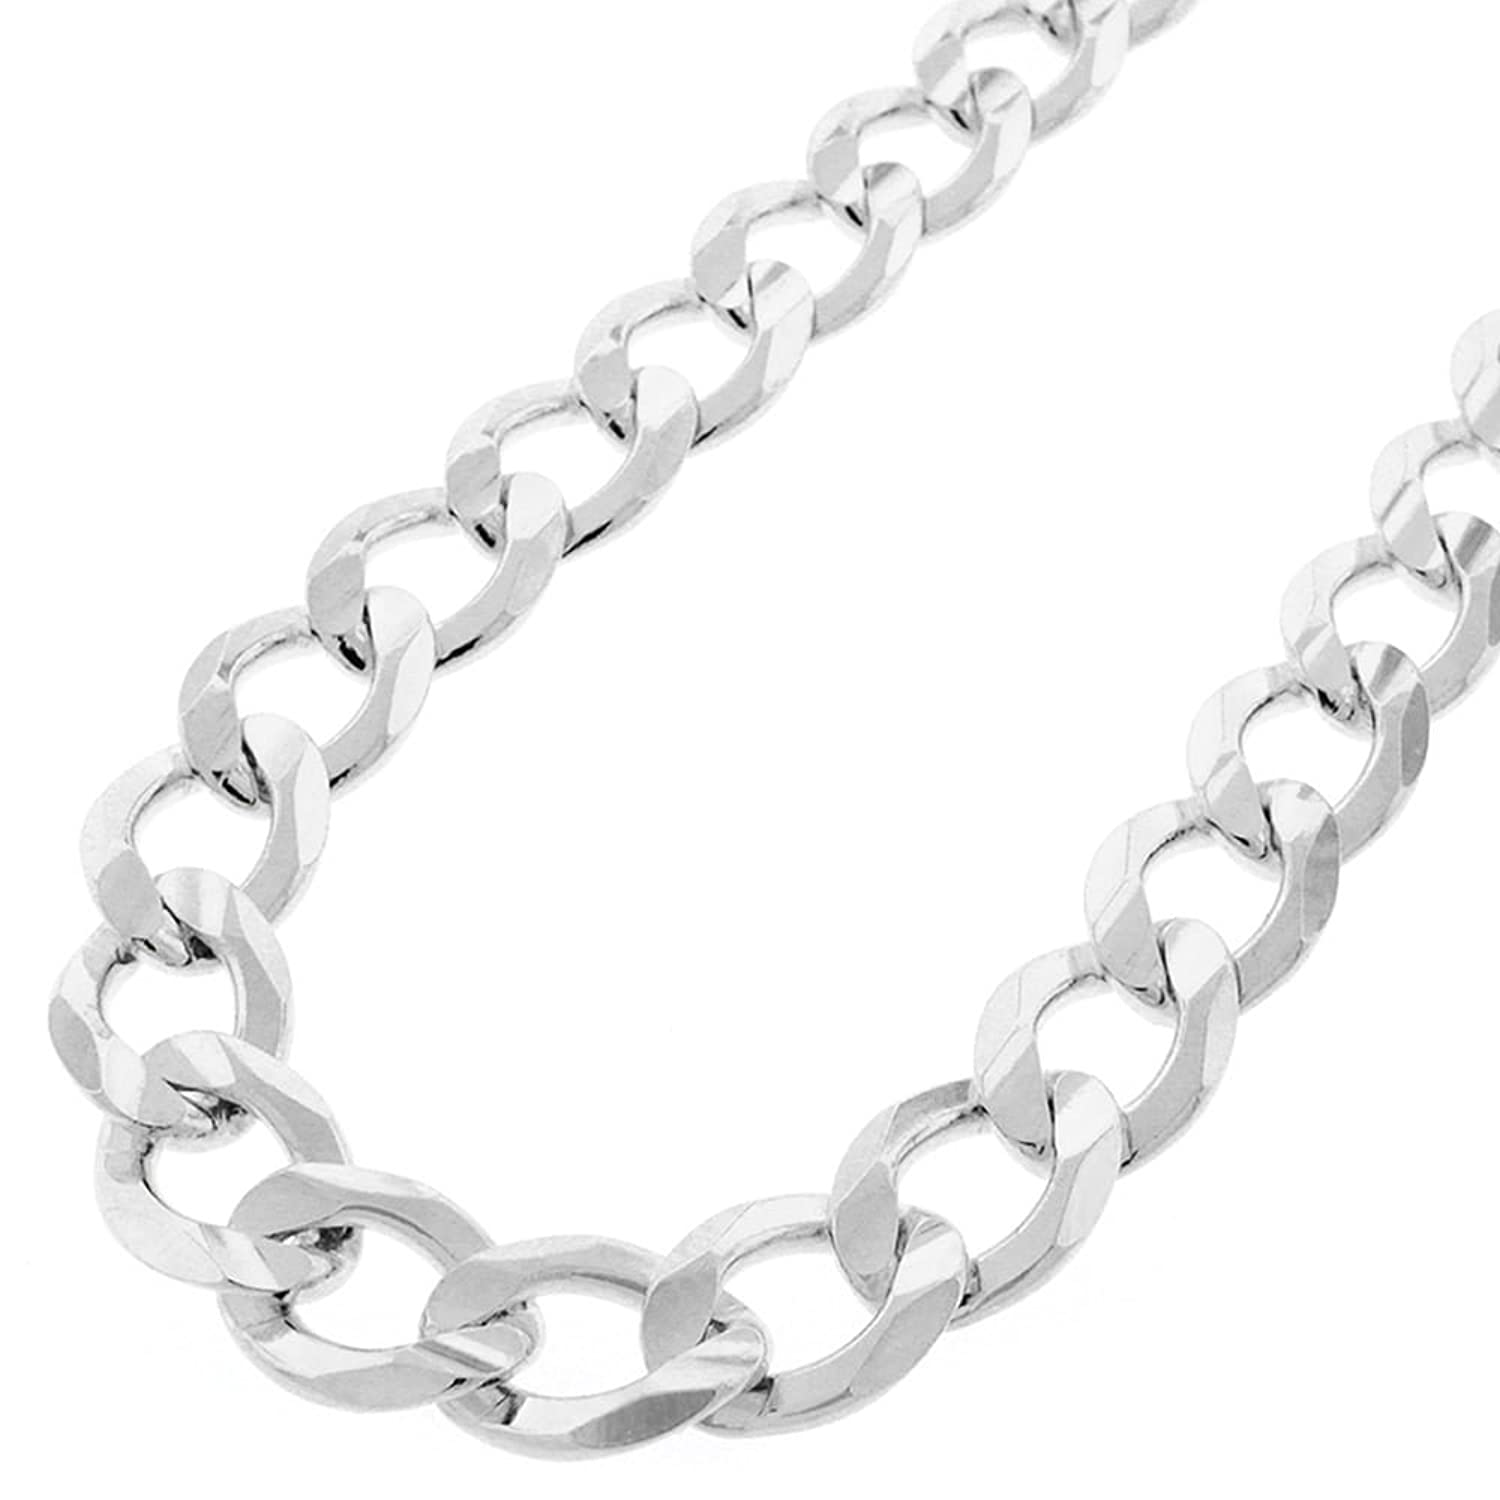 """Sterling Silver Italian 12mm Cuban Curb Link ITProlux Solid 925 Necklace Chain 24"""" - 30"""""""